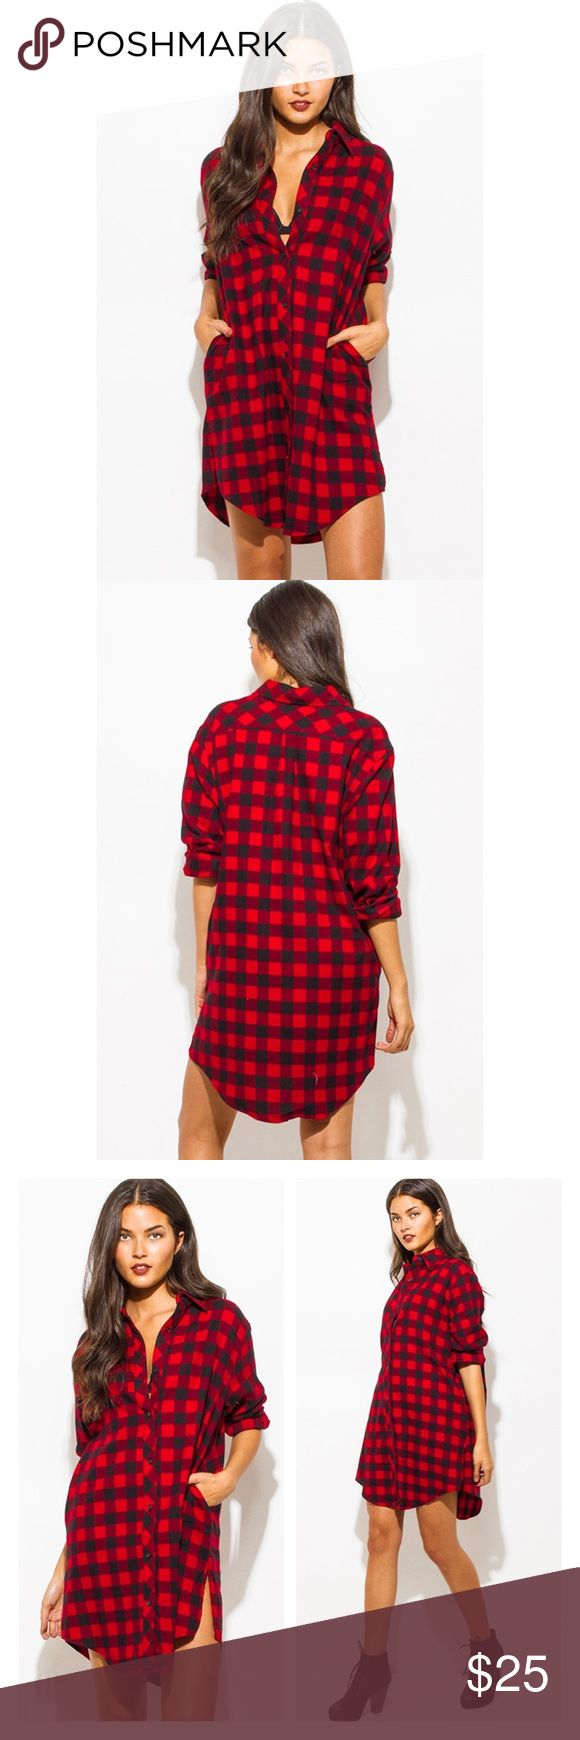 Plaid Flannel Tunic Button Up Oversized Dress Top Plaid flannel tunic shirt top Mini dress featuring three quarters sleeves and a relaxed fit that can also be worn as an oversized top. 100% Cotton Dresses